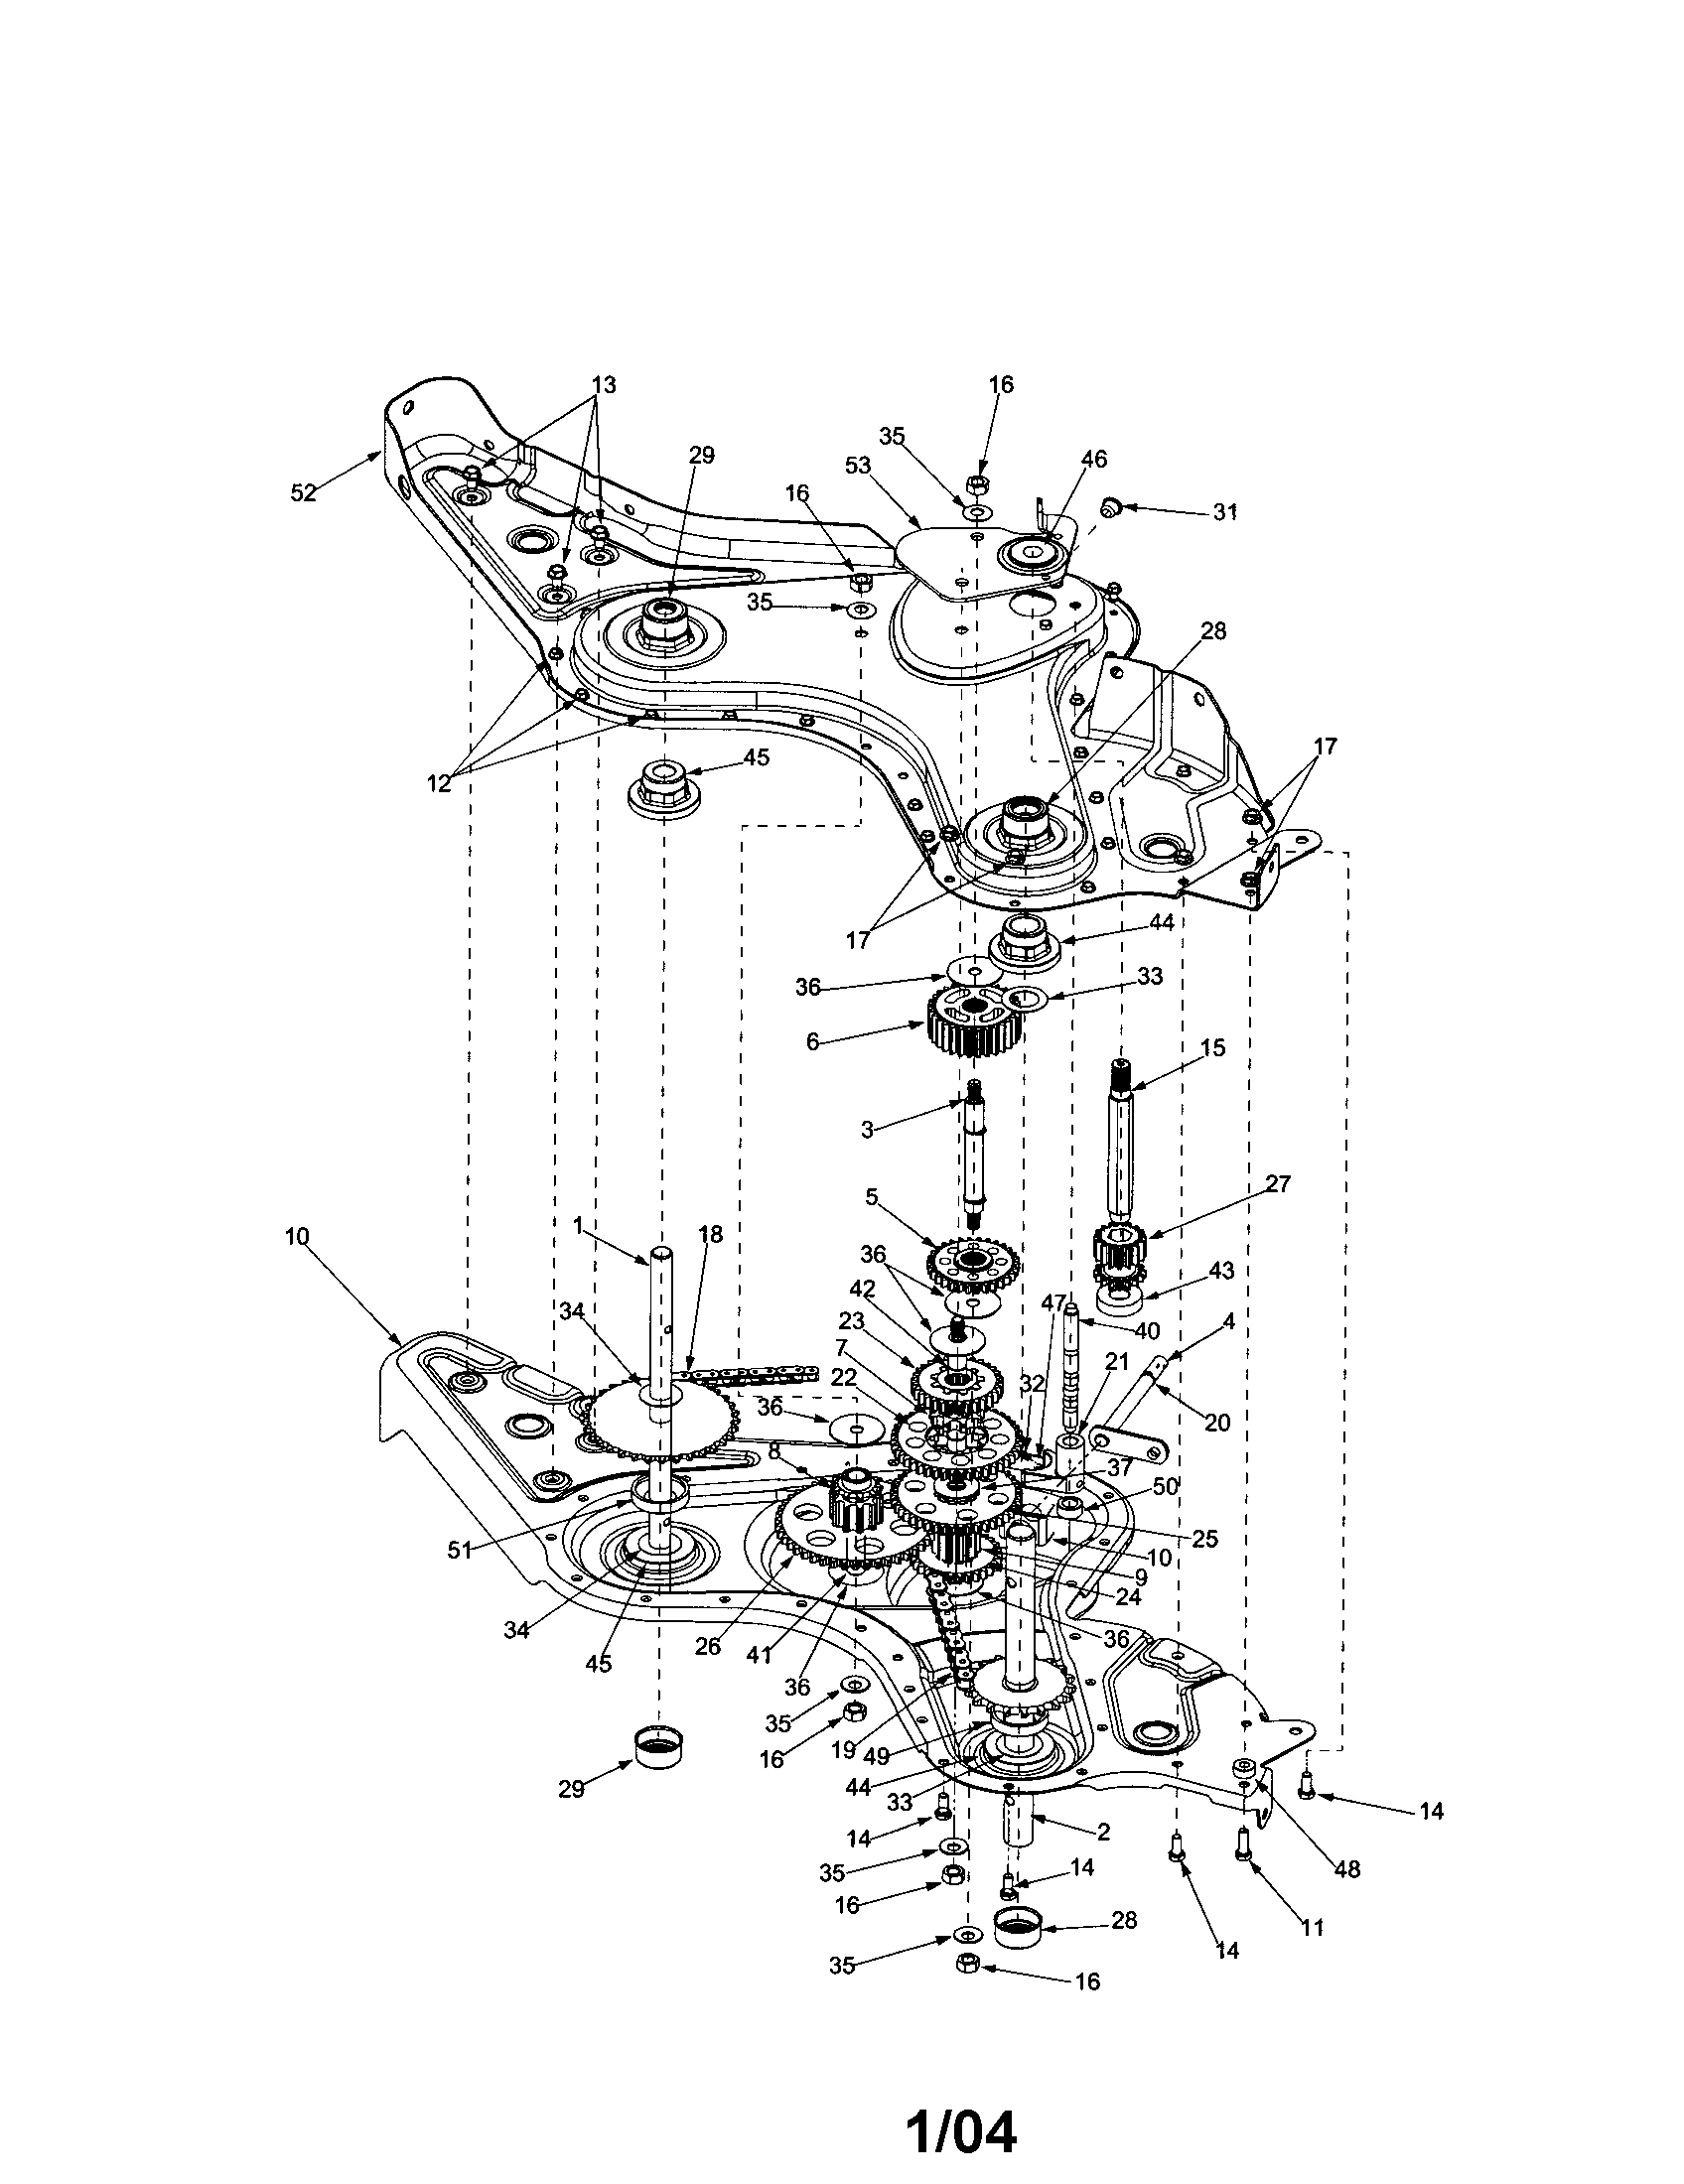 Mtd Rear Tine Tiller Diagram Wheel Shaft Engine Assembly And Parts List For Lawnboy Walkbehindlawn